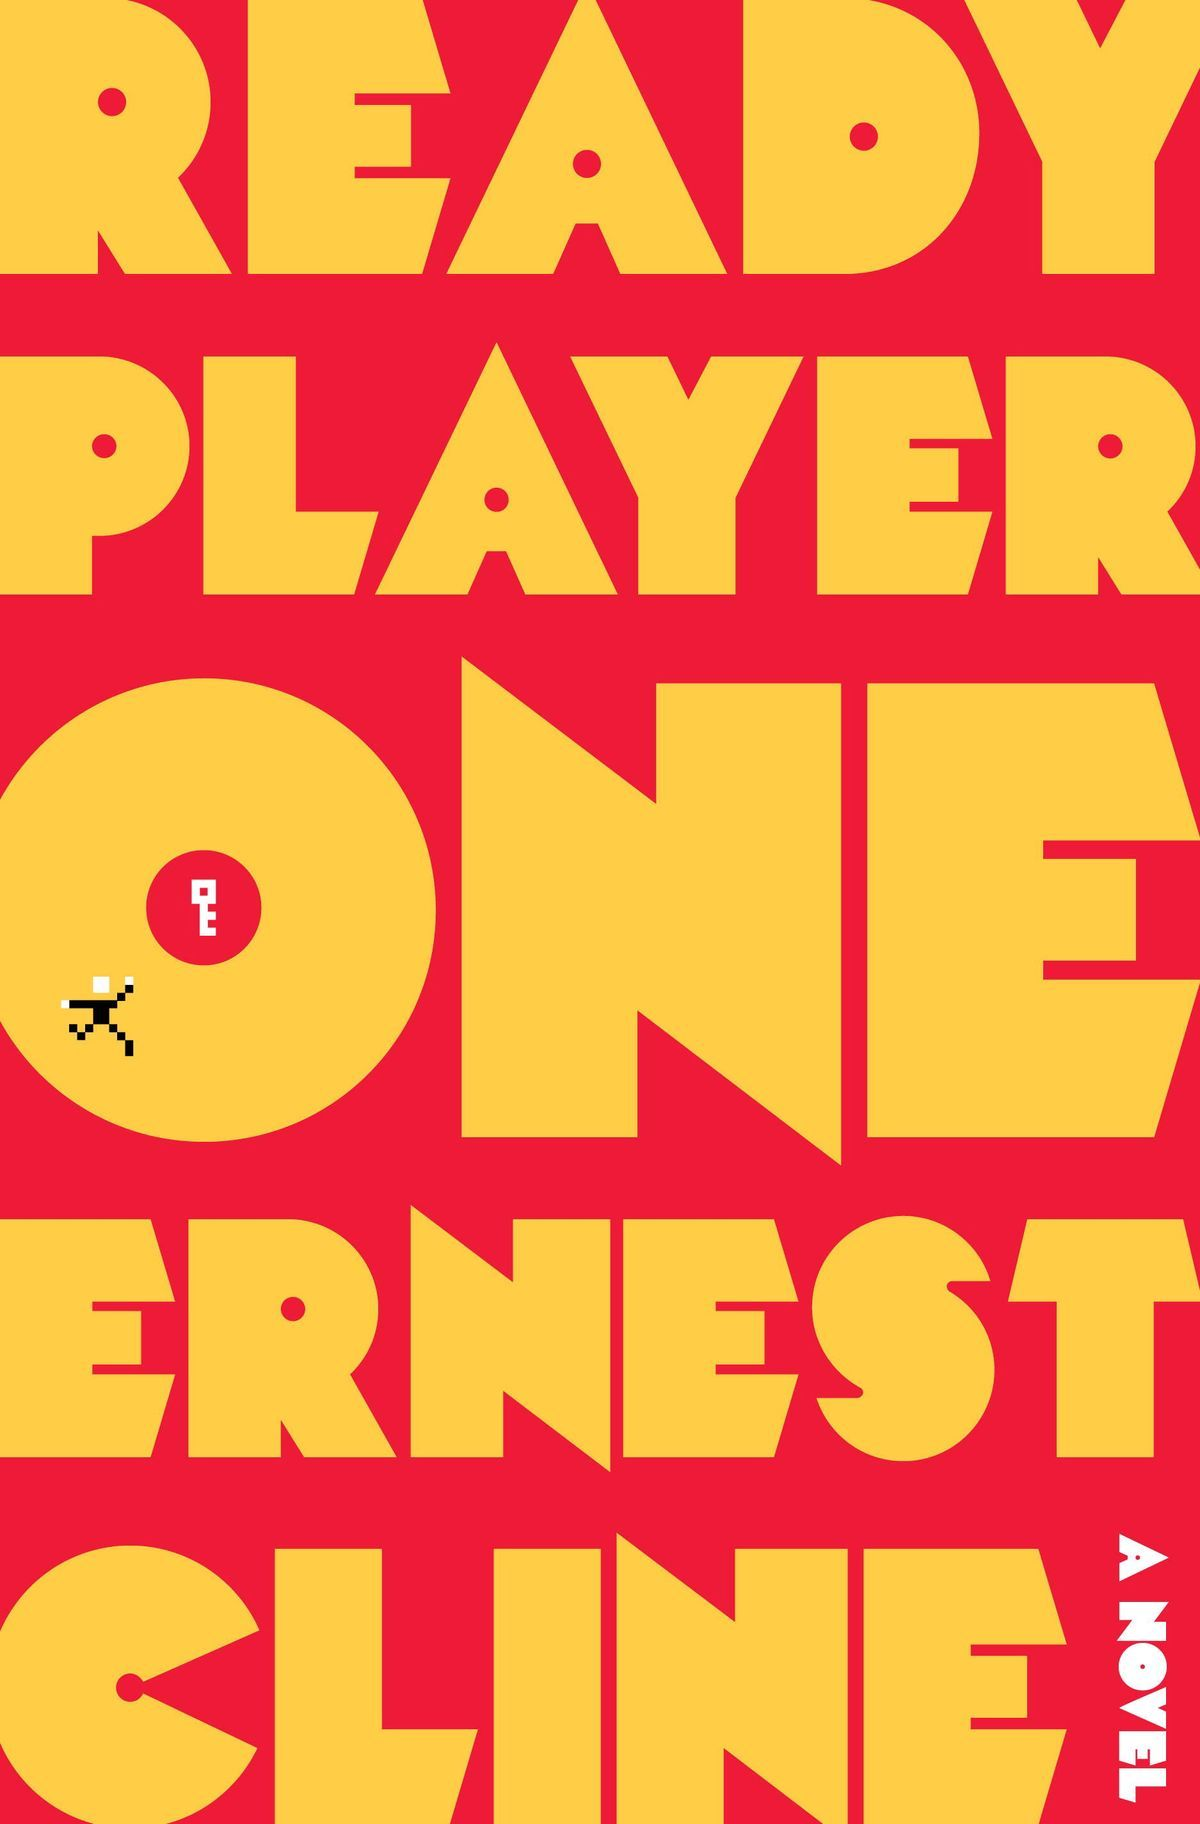 Pdf Ready Player One By Ernest Cline In 2020 Ready Player One Ready Player One Book Player One